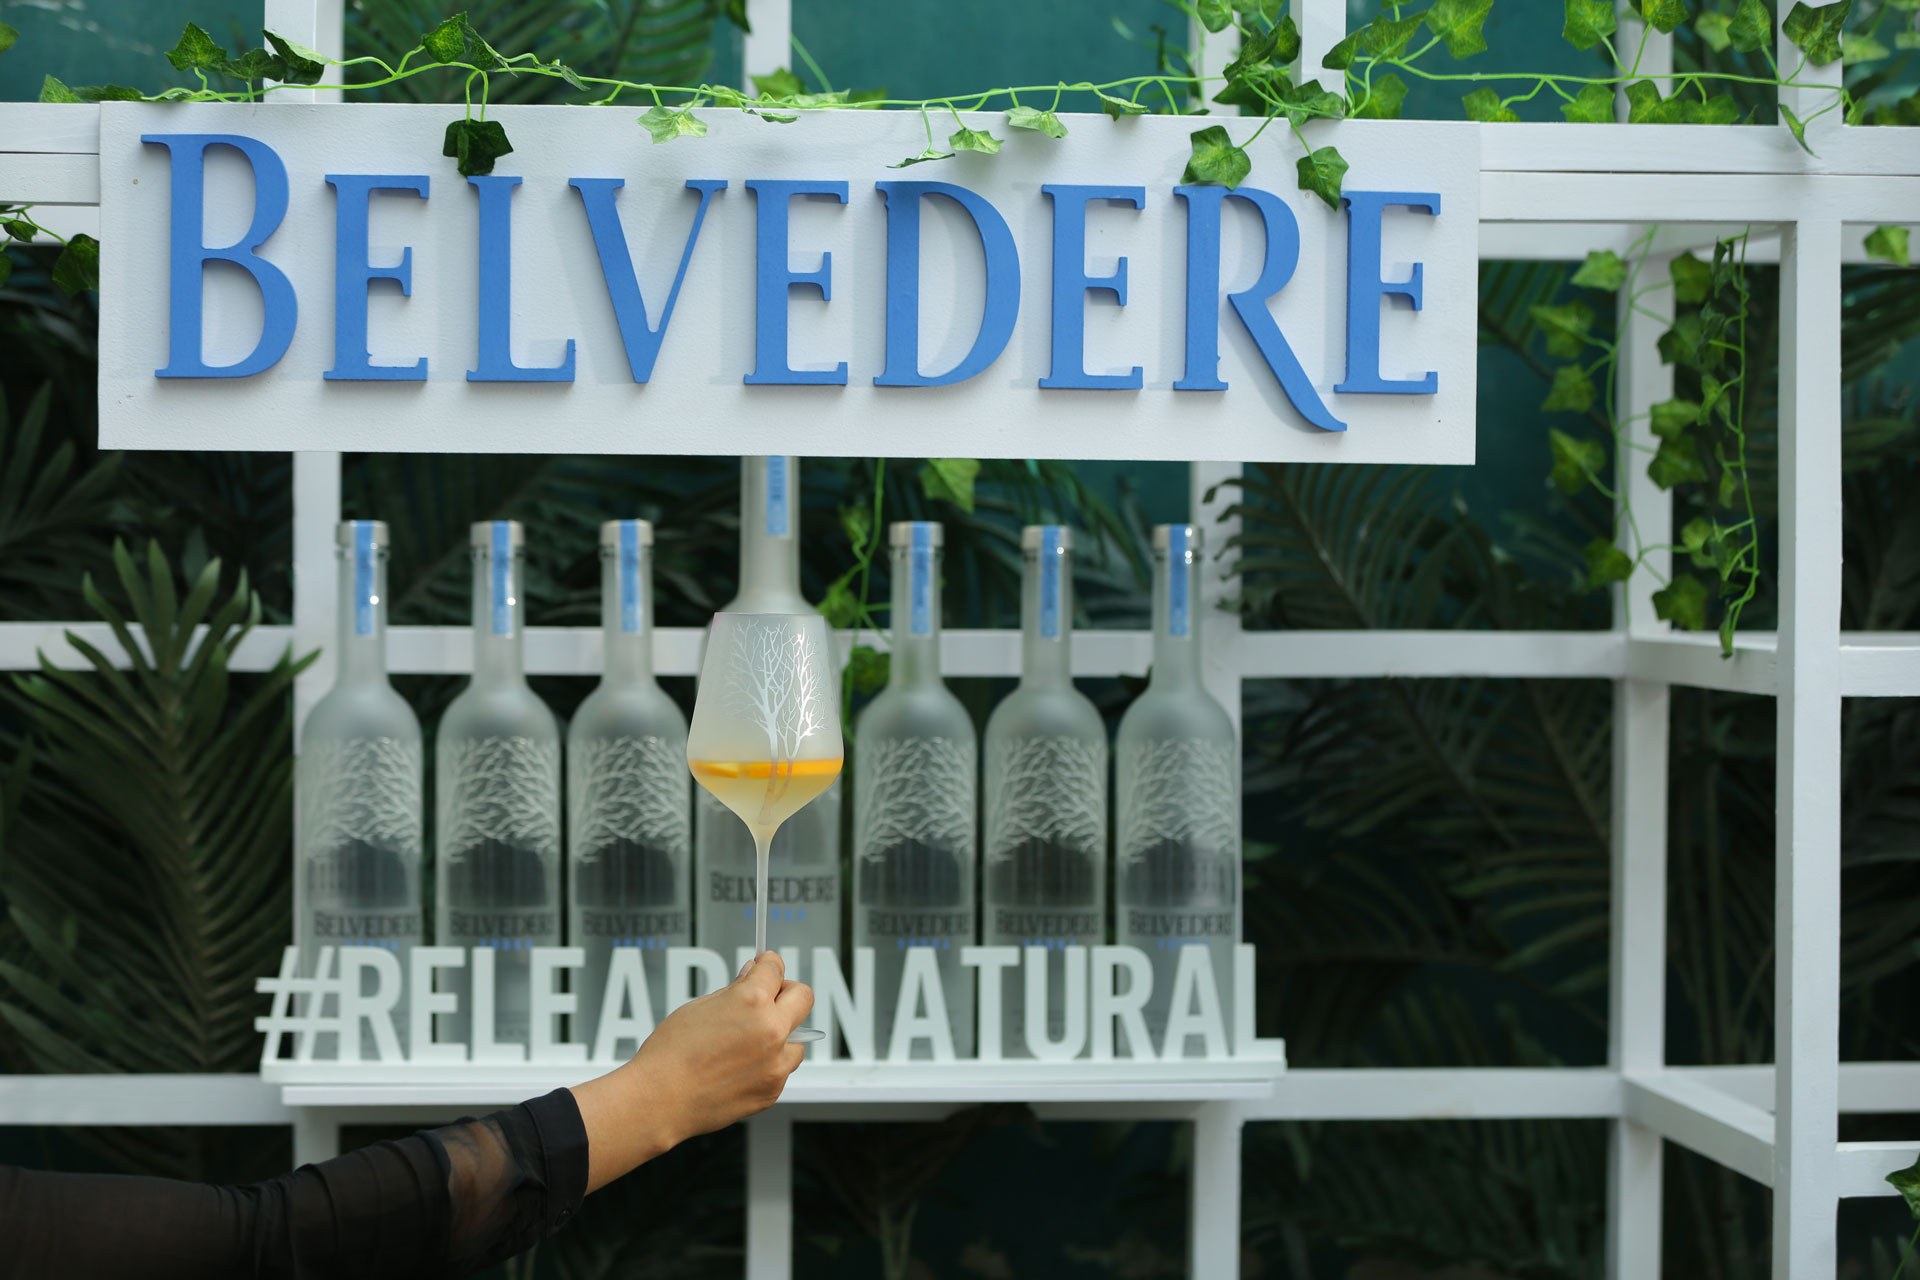 Find Out Everything That Happened At The Snappiest Bartending Competition, Belvedere Relearn Natural 2018 photo